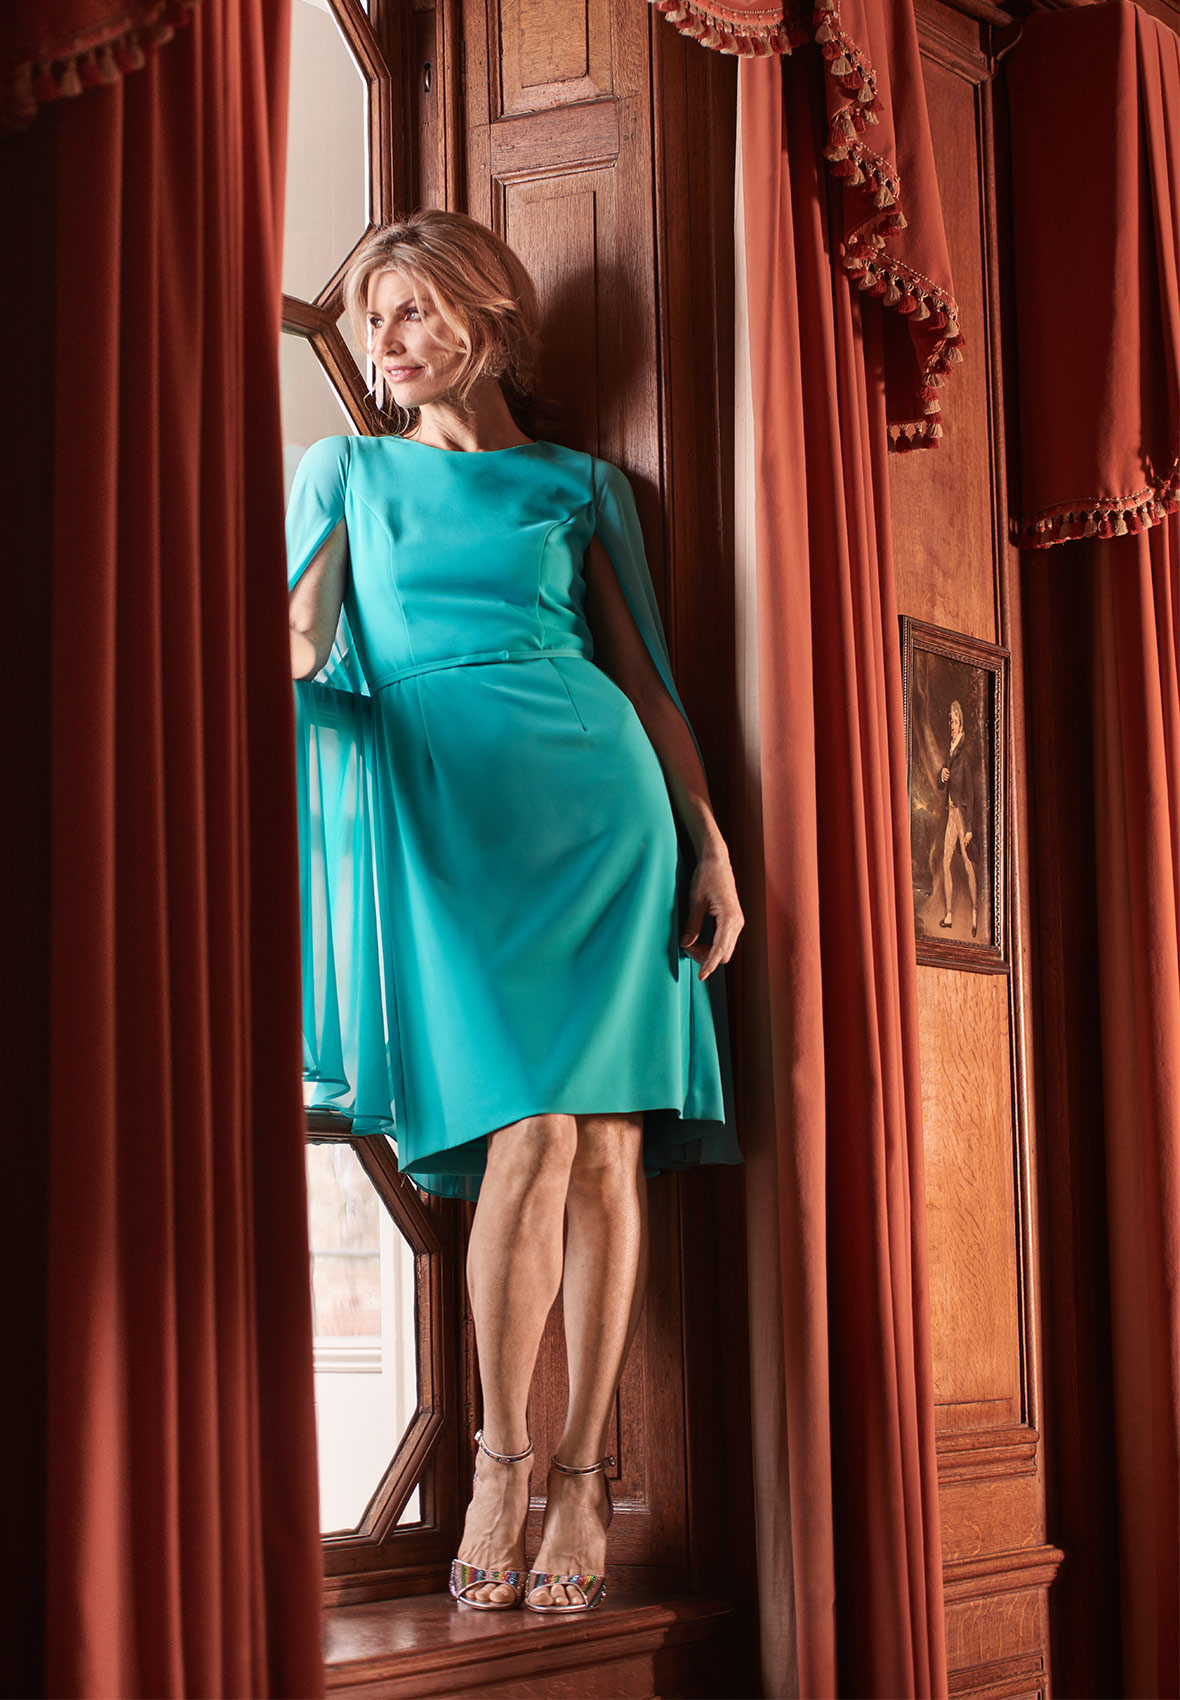 Model standing on a window sill wearing a teal dress